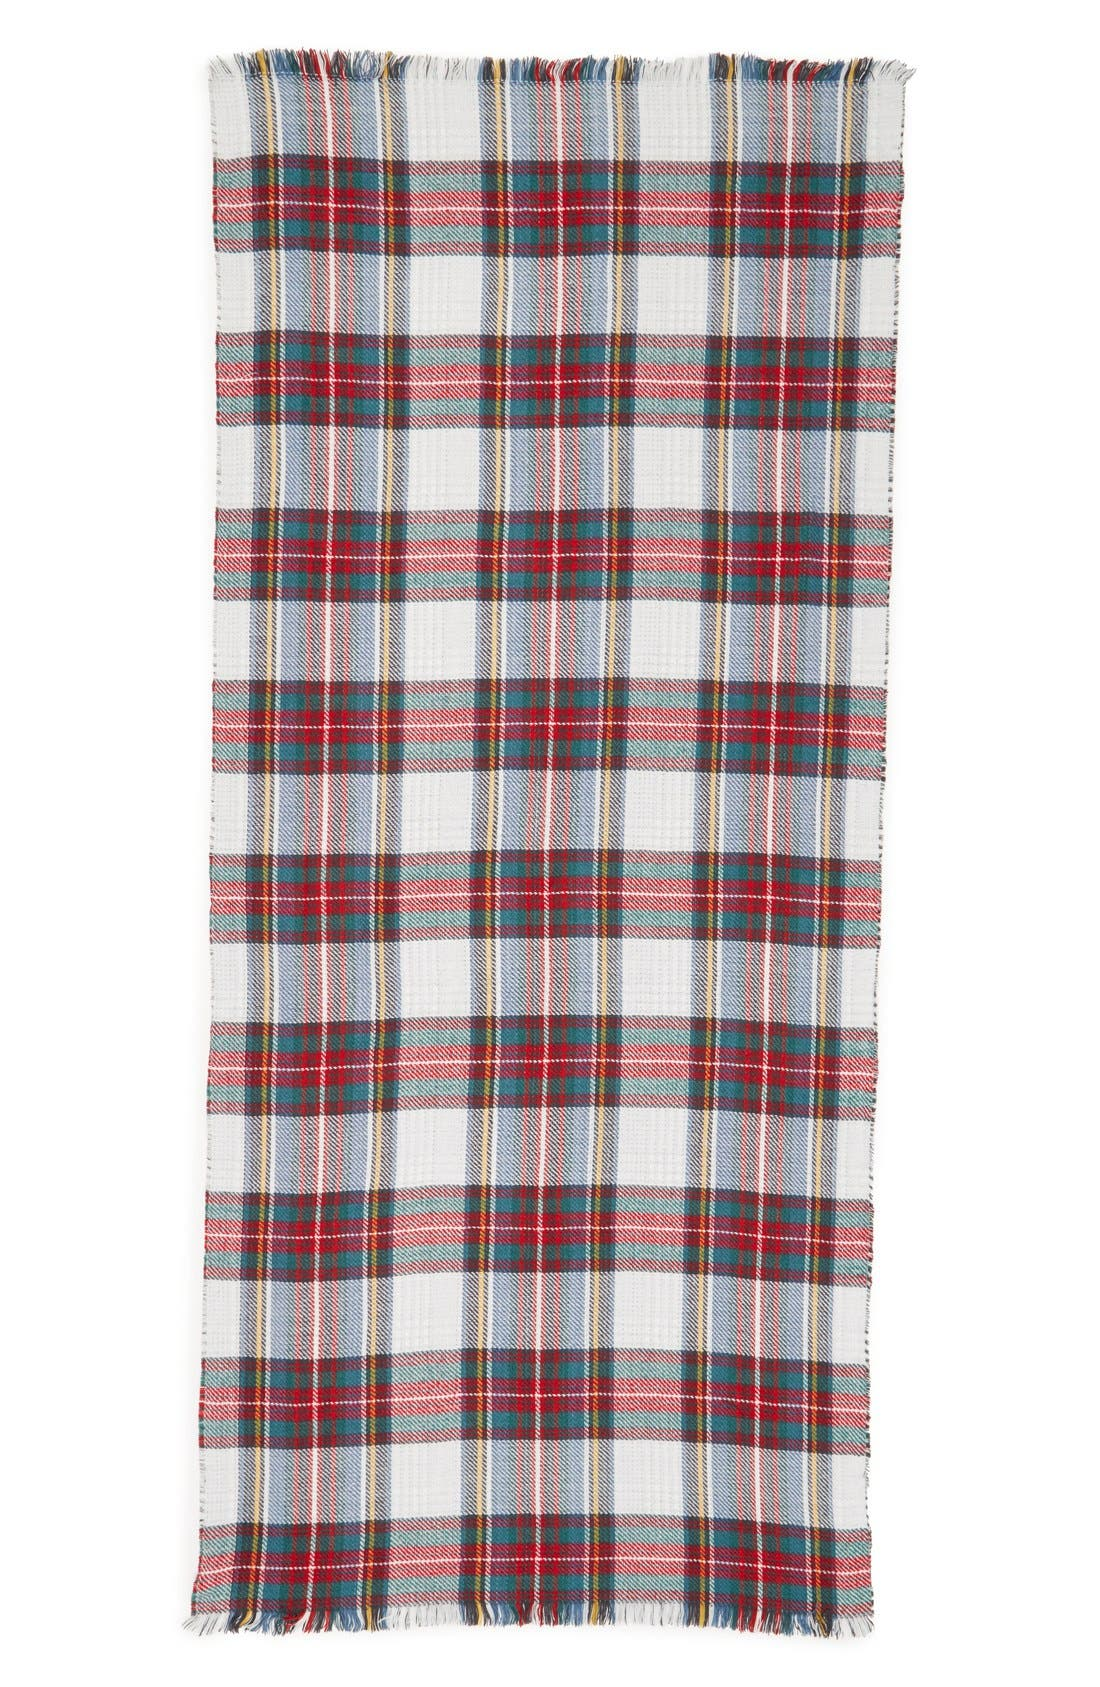 Accessory Collective Plaid Reversible Scarf,                             Alternate thumbnail 2, color,                             117